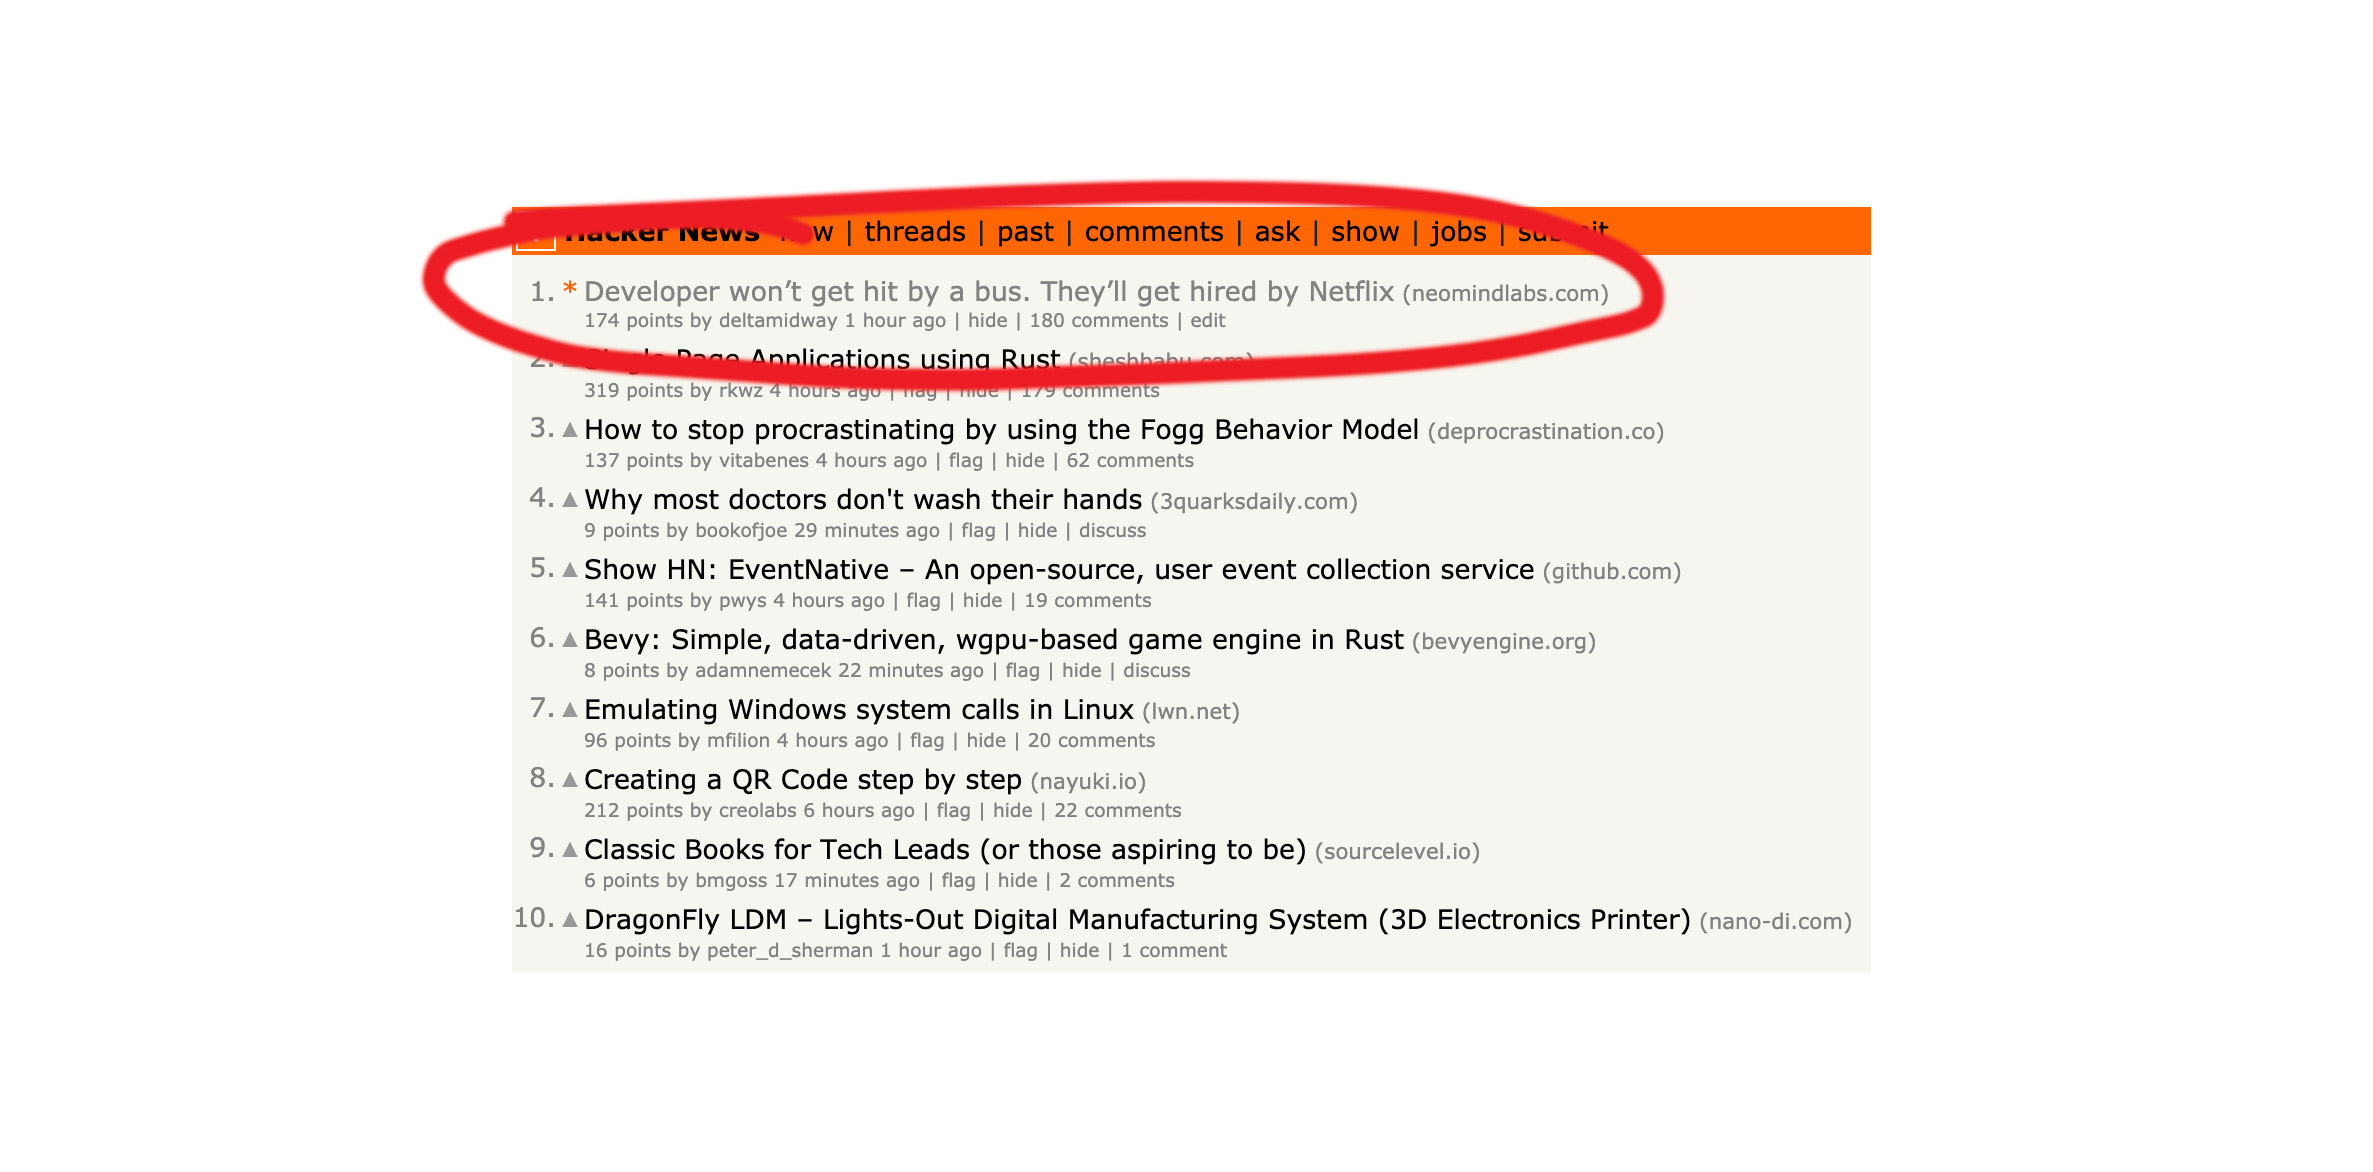 Hacker News Screenshot of our post at the top